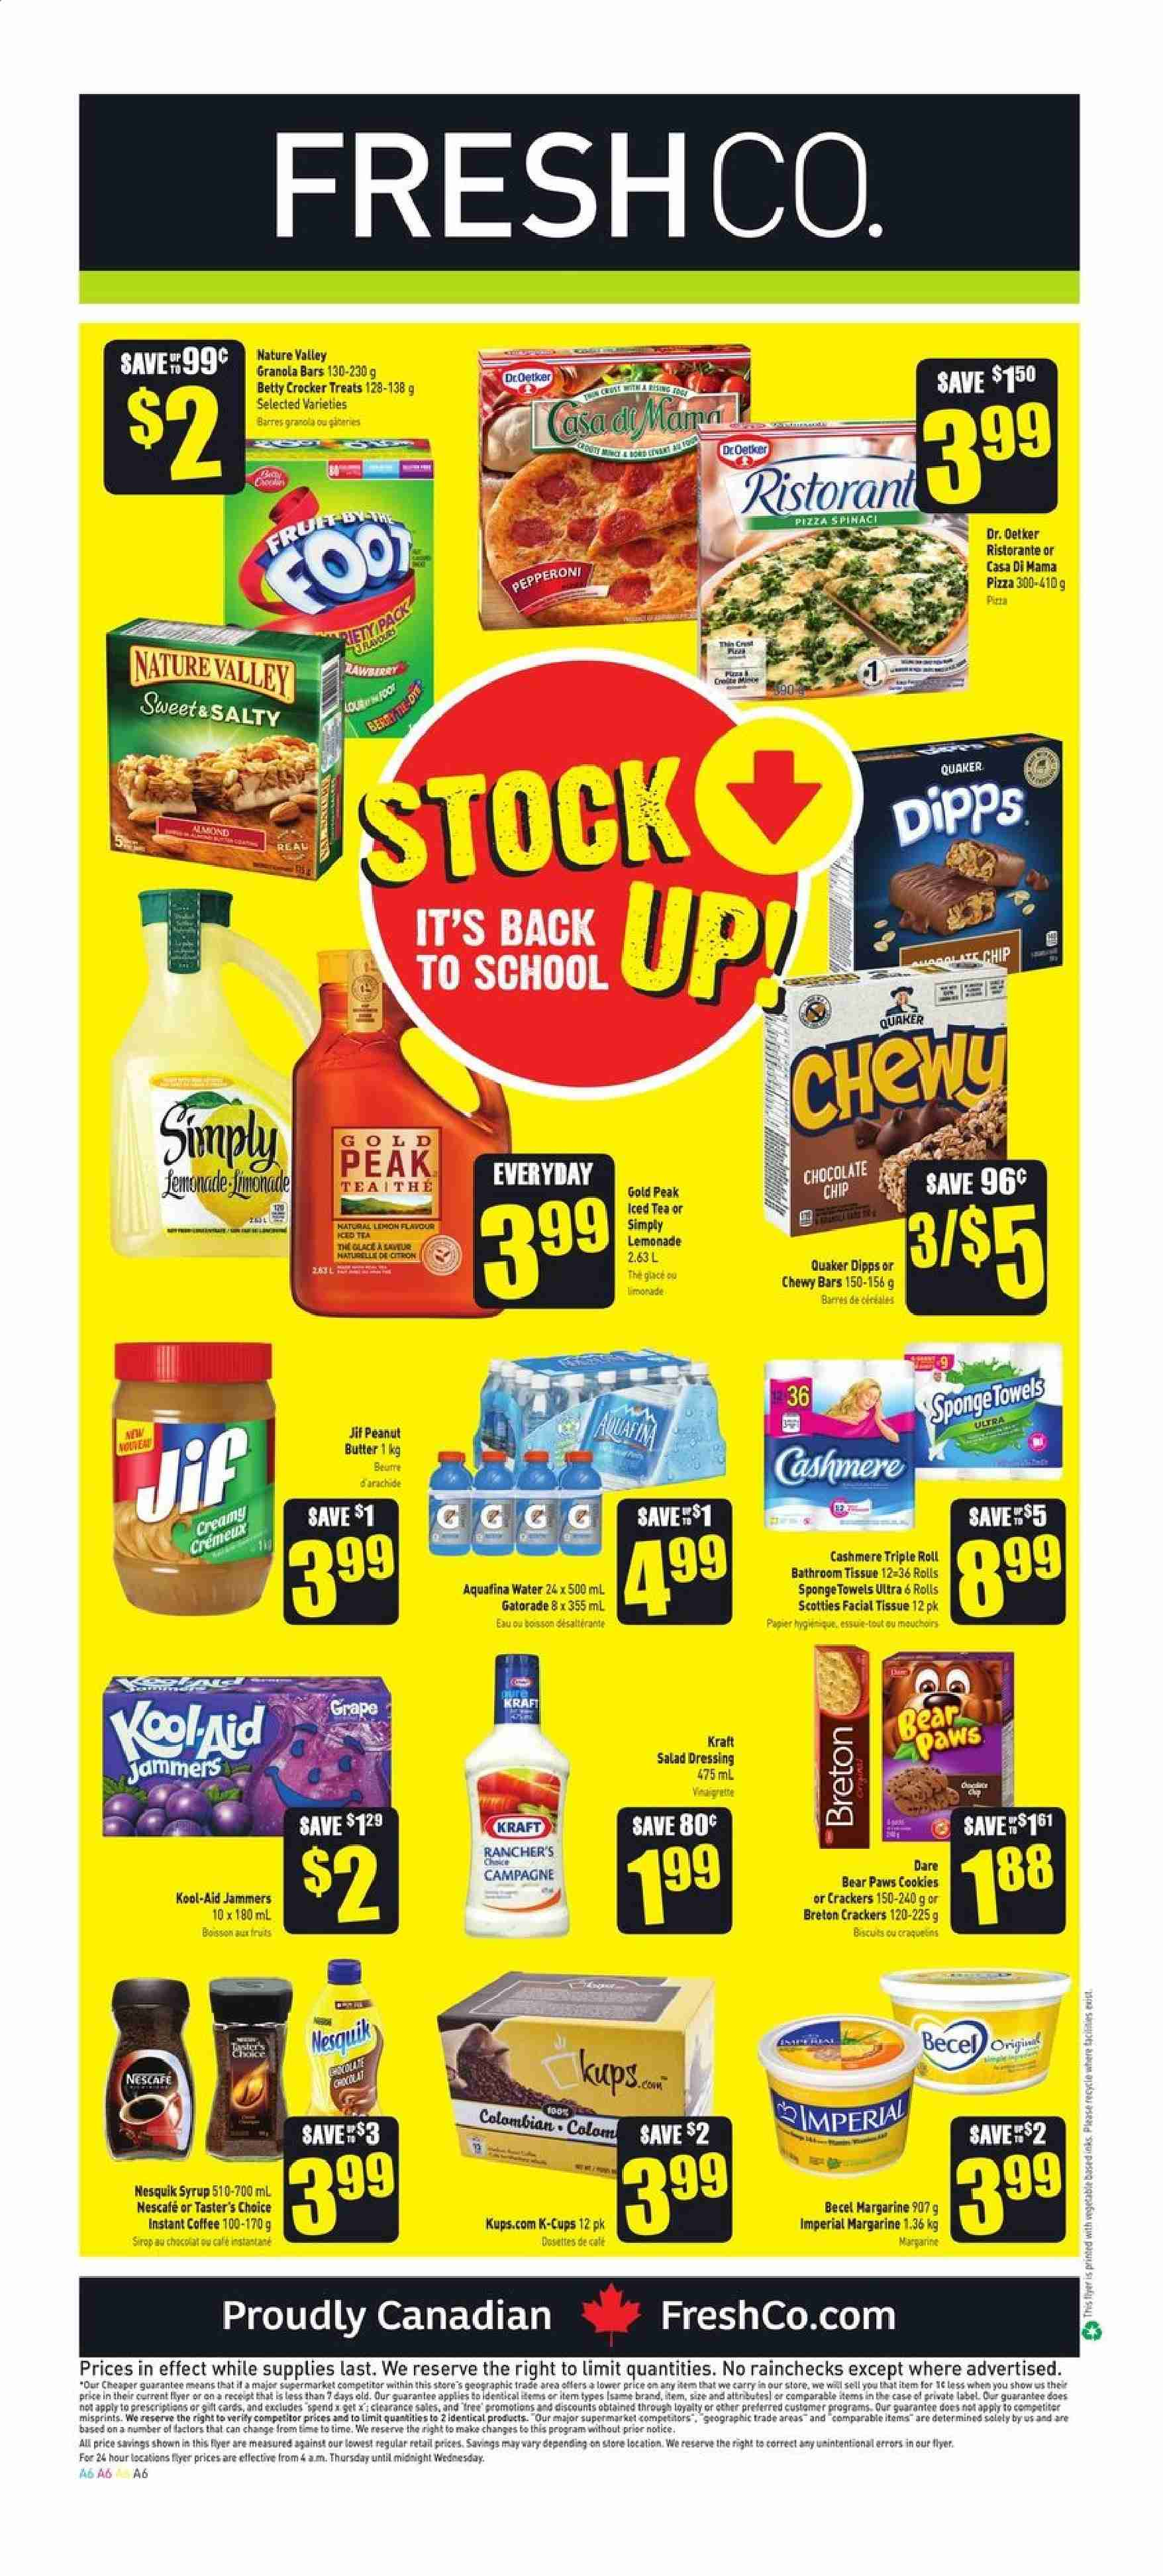 FreshCo. Flyer  - August 29, 2019 - September 04, 2019. Page 6.